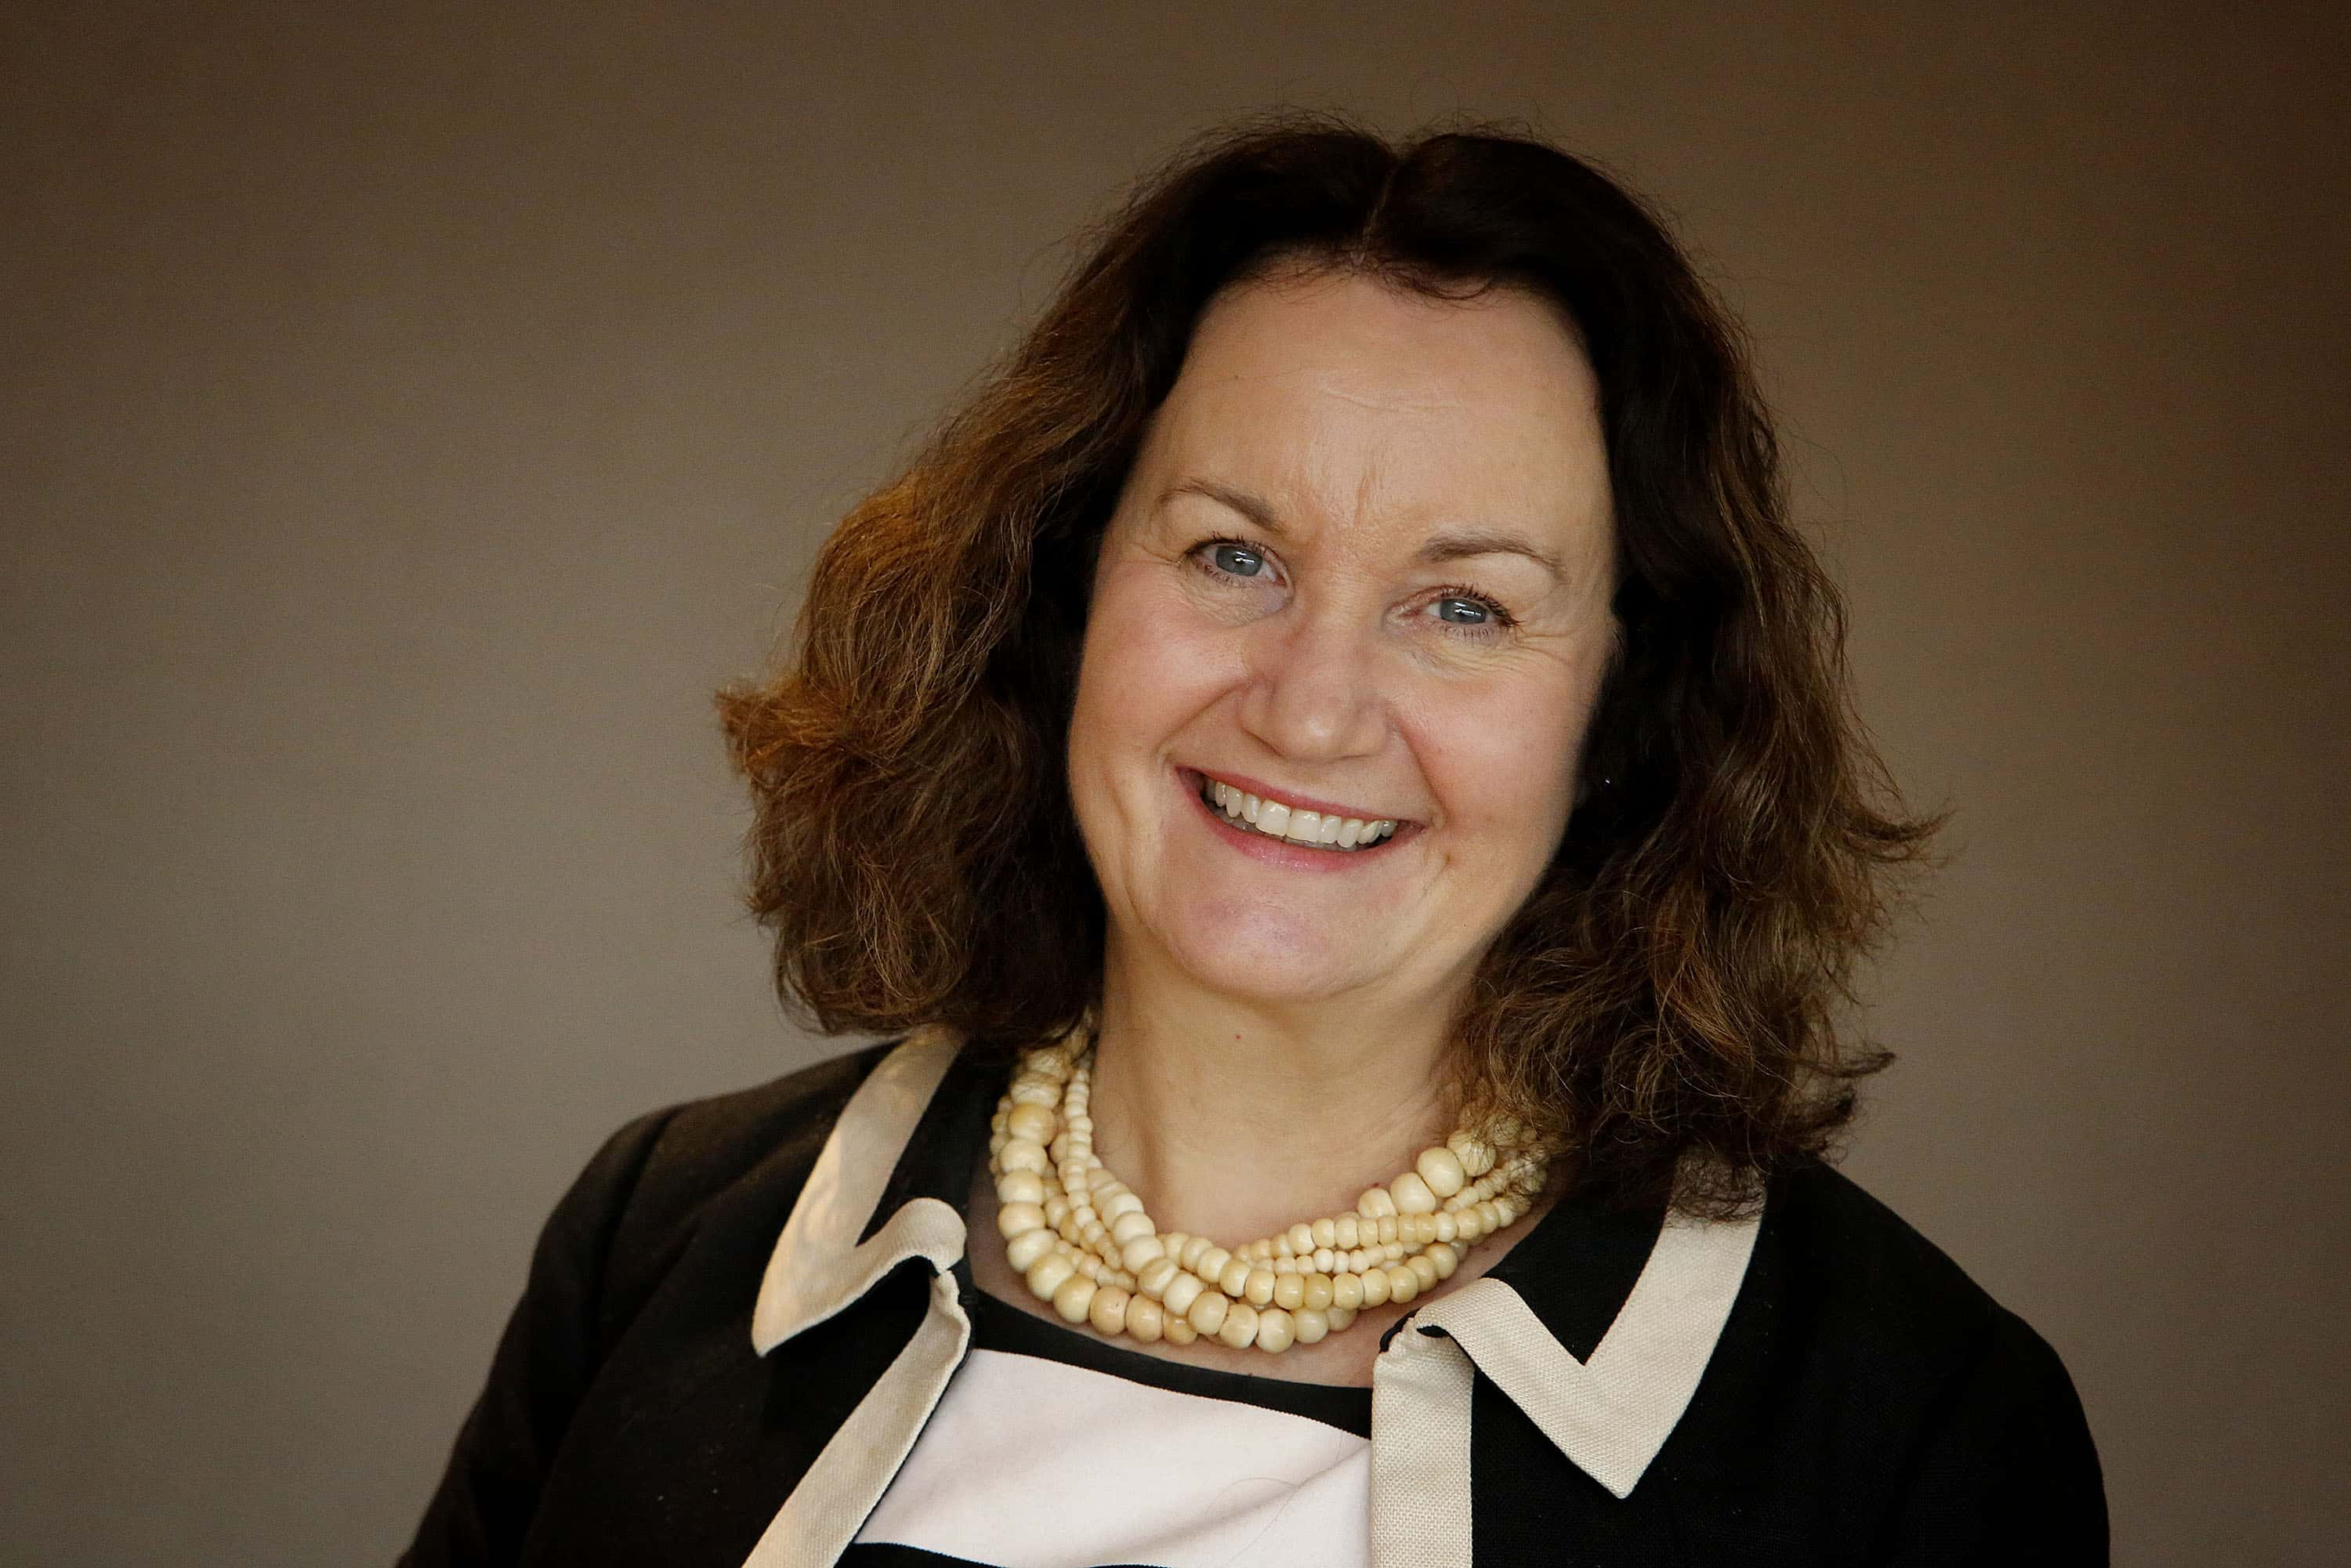 Shirley Atkinson, Vice Chancellor of the University of Sunderland/University of  Sunderland.